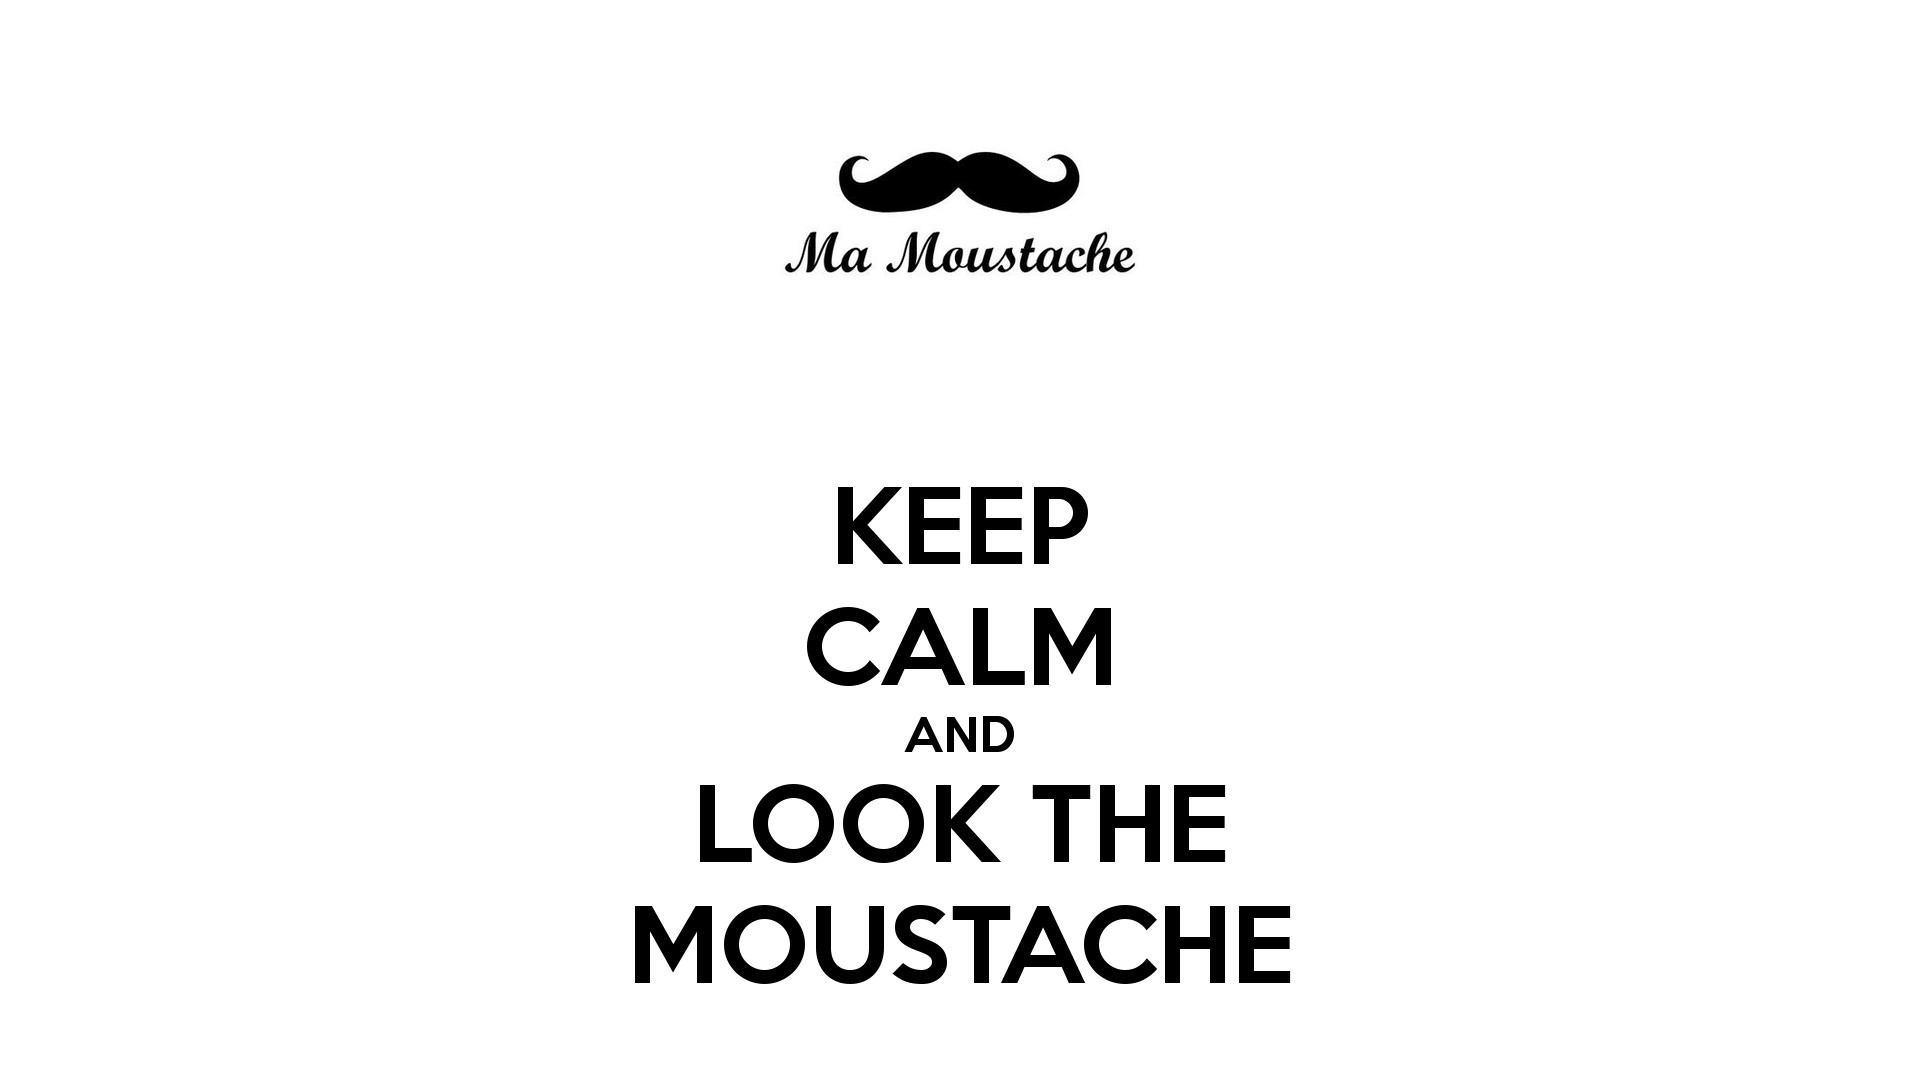 1920x1080 Free-Download-Mustache-Backgrounds | wallpaper.wiki